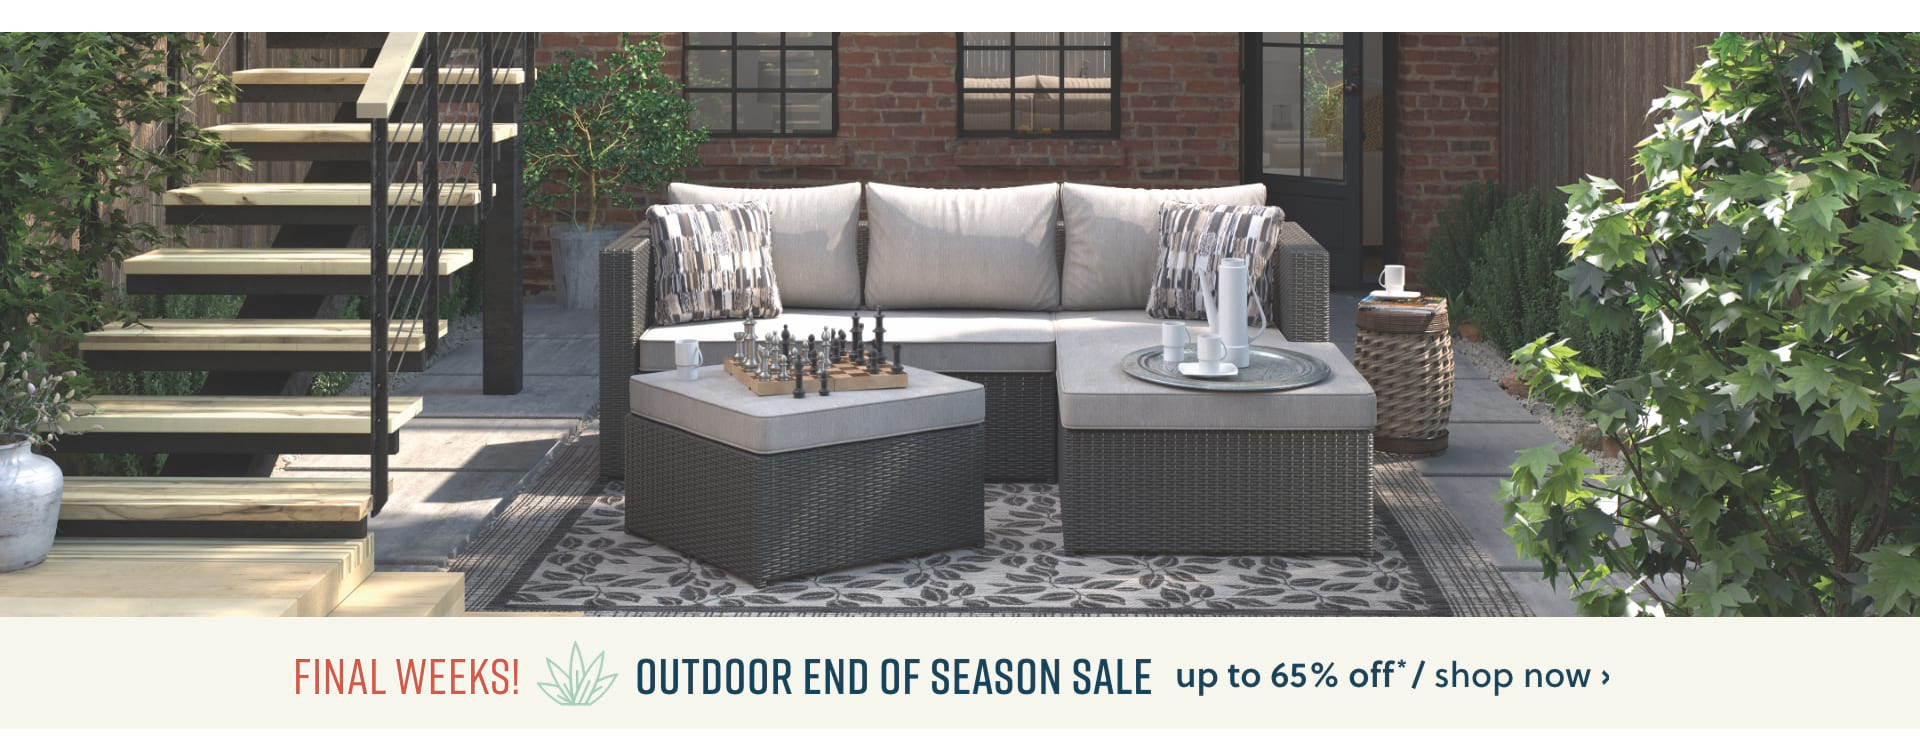 Outdoor end of season sale up to 65% off*